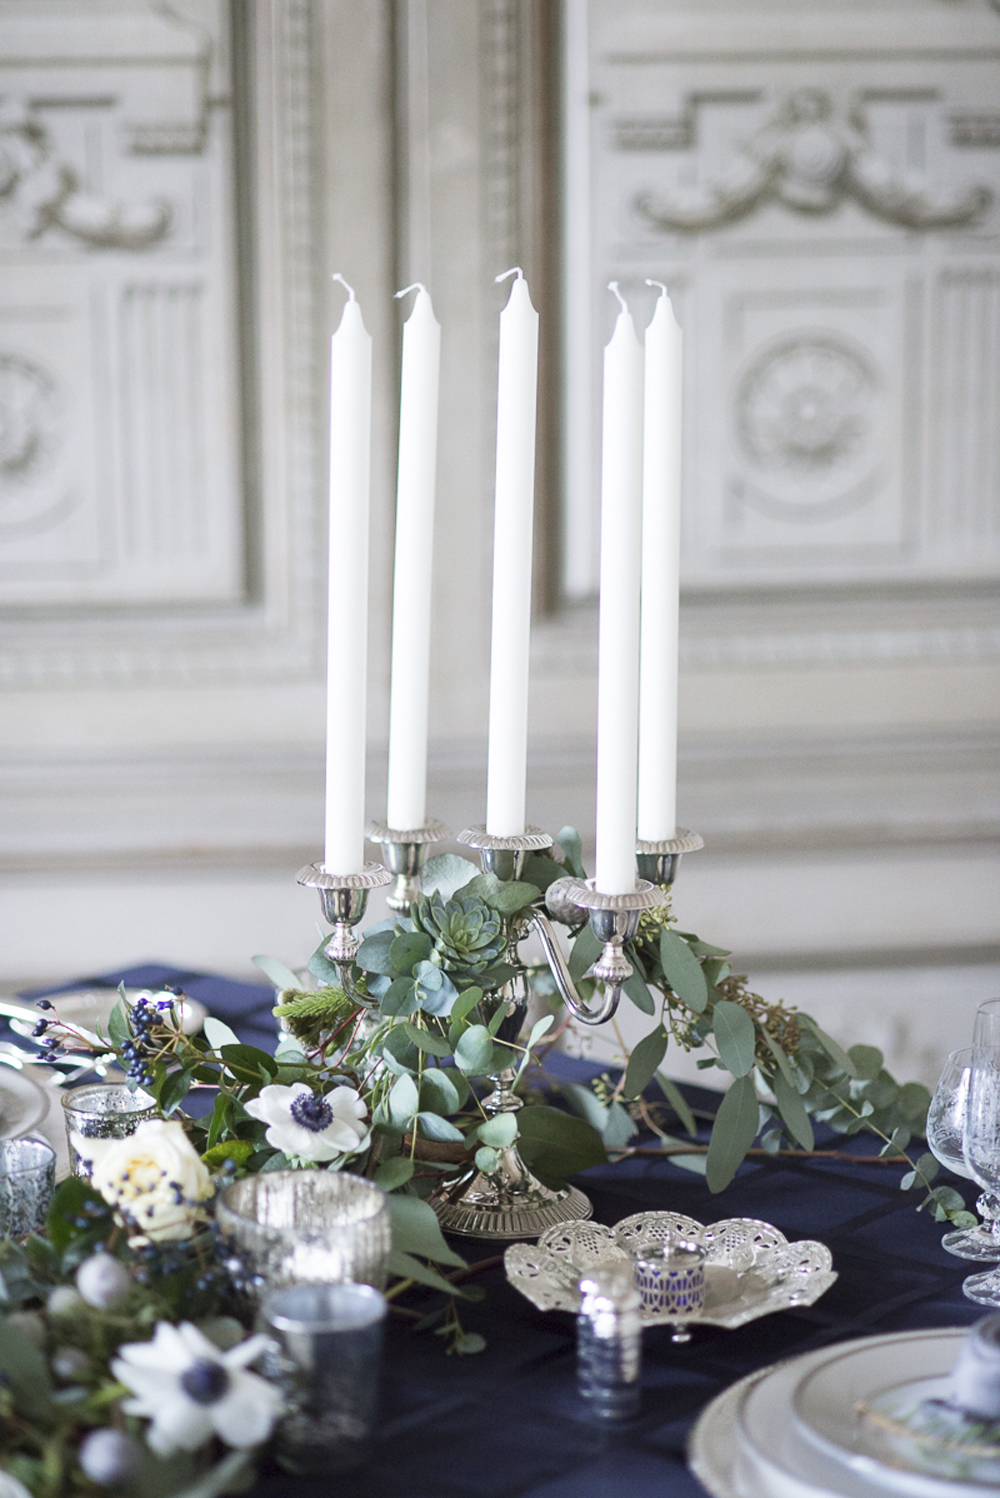 Floral runner table decoration wedding inspiration at Schloss Laudon Vienna Austria by Barbara Wenz Photography